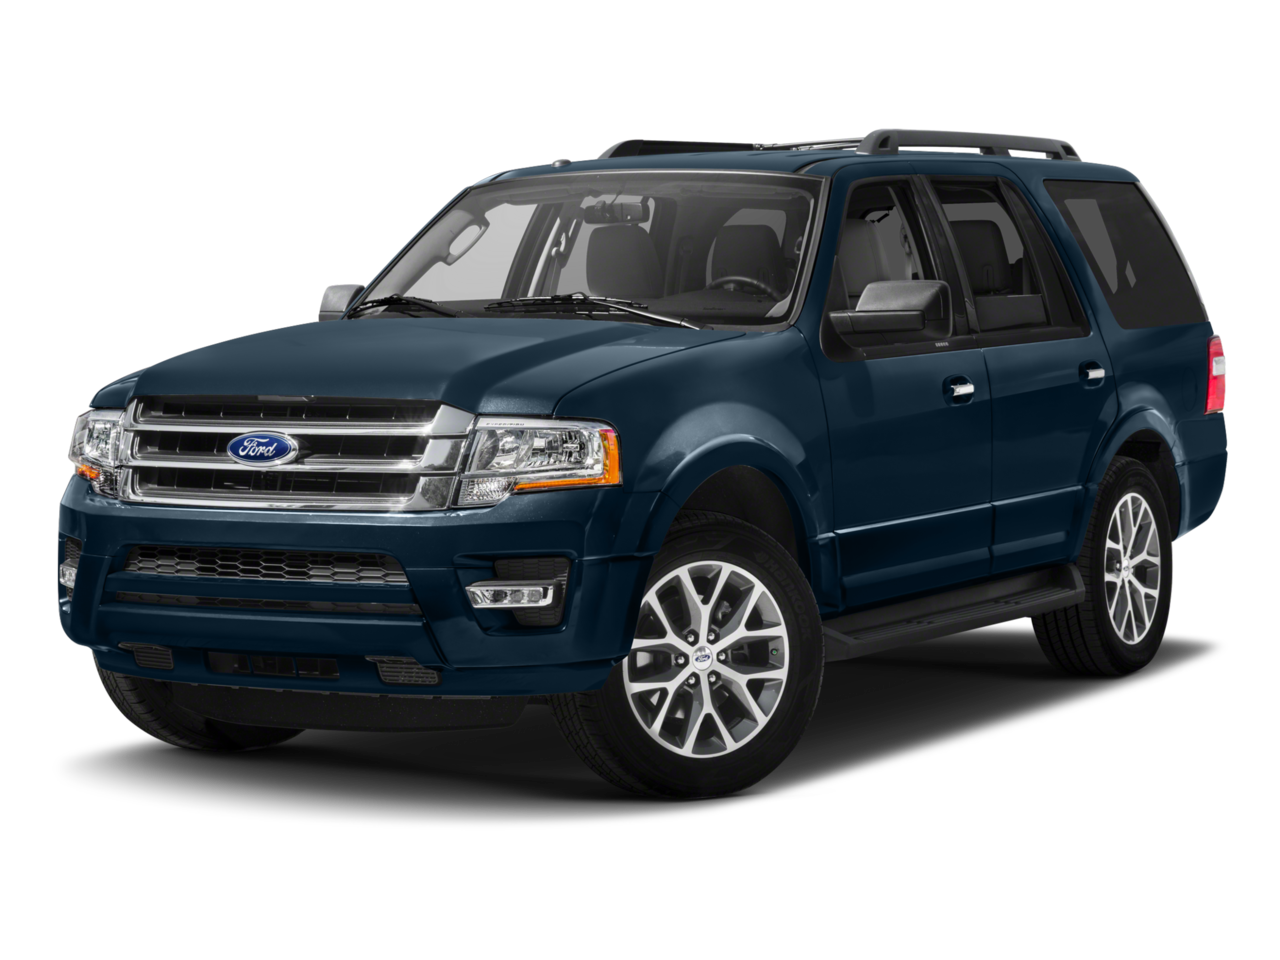 2017 Ford Expedition | Wexford, PA